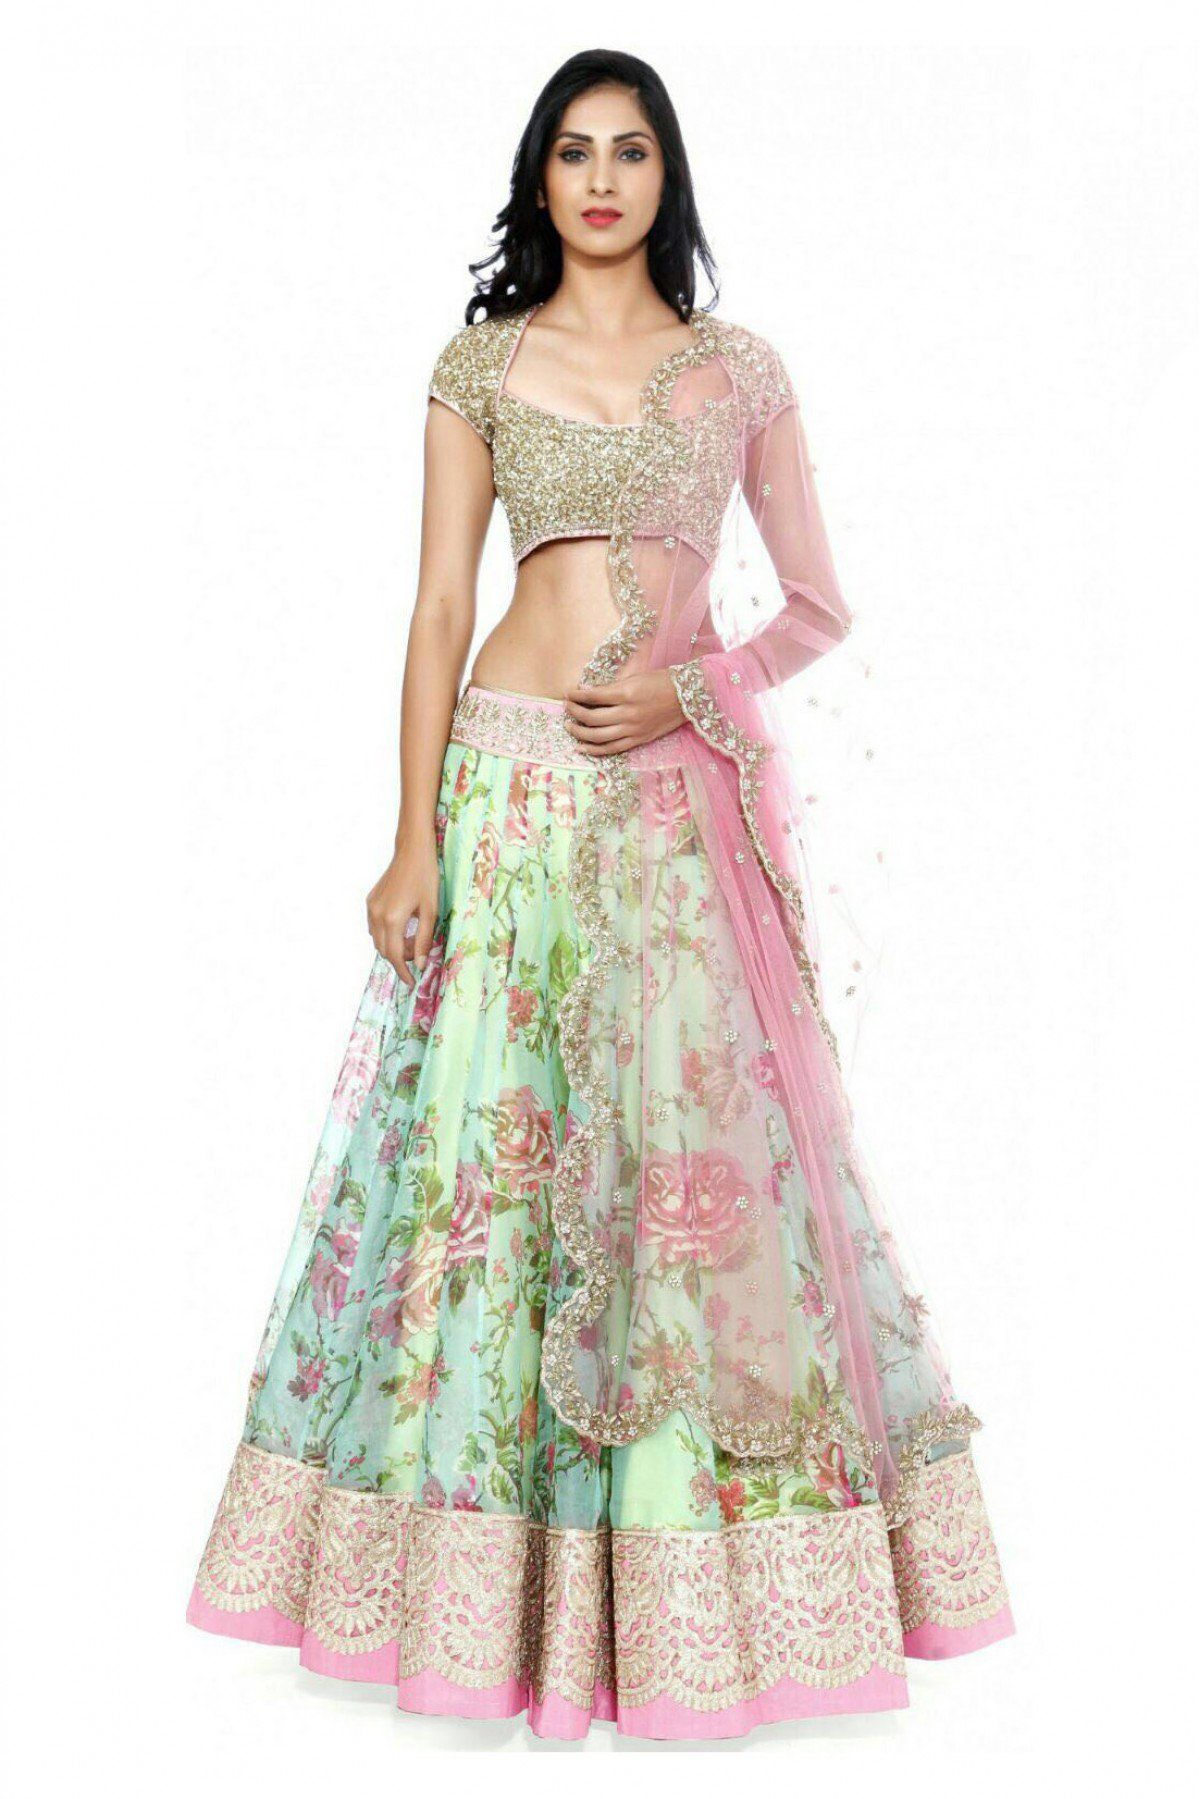 60d70ef885 Anushree Reddy floral gota patti and embroidery lehenga! Follow The Wedding  Ensemble for bridal styling and inspirations... www.theweddingensemble.com